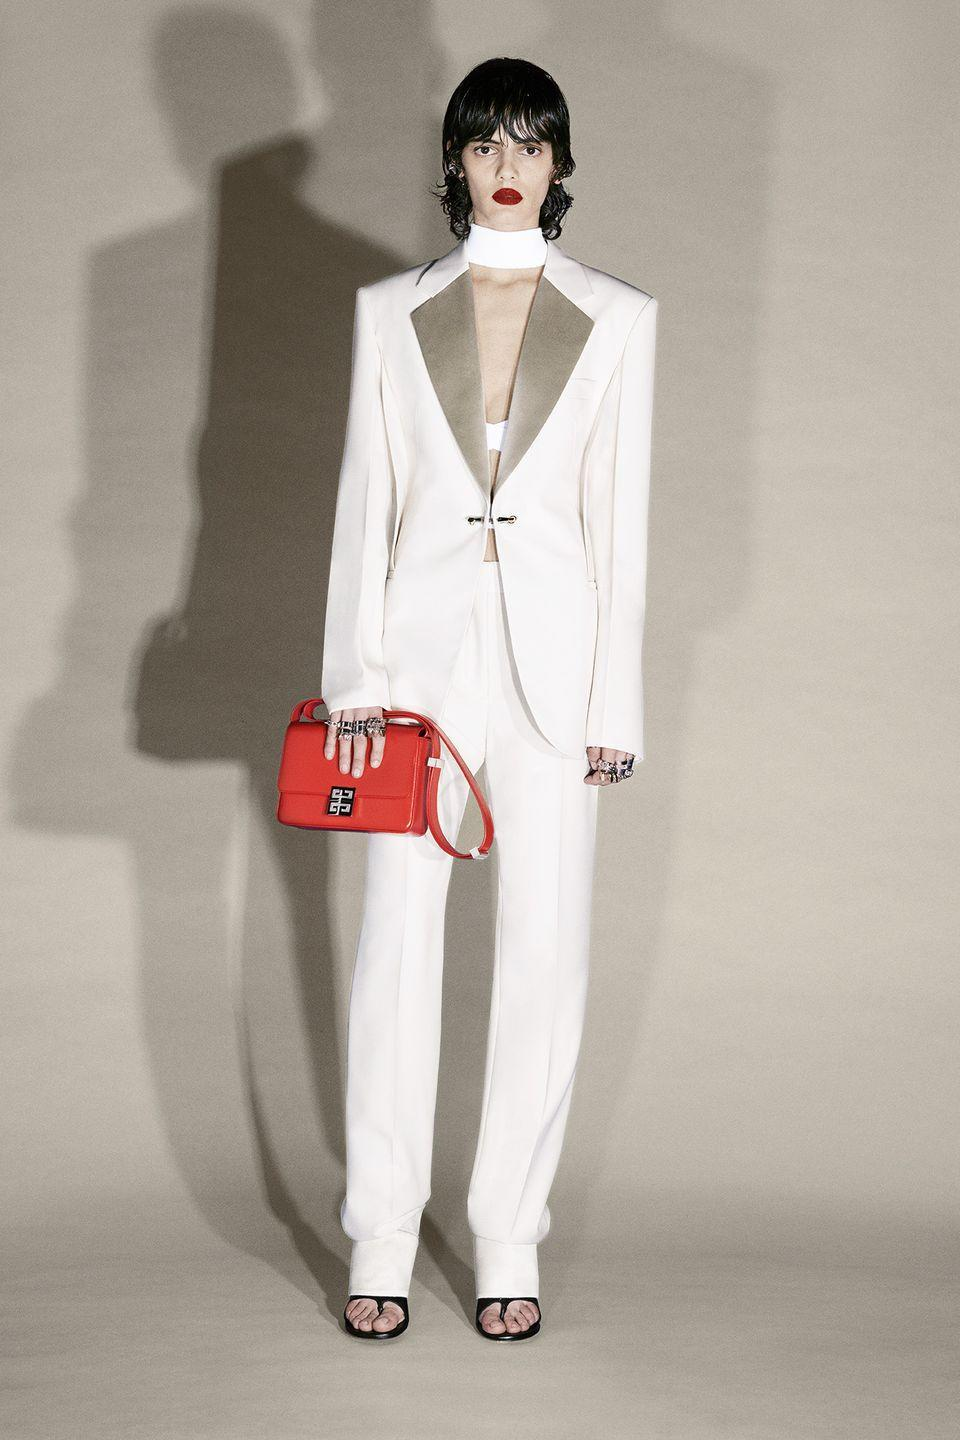 """<p>""""Ultimately, what I am trying to do in the Givenchy collections is to reflect today's world,"""" said Matthew M. Williams, the brand's newly appointed creative director. """"I appreciate a certain material experimentation and an intense contrast in clothing that could only be achieved and exist now. At the same time, we embrace tradition, the techniques of the salon and timelessness; these distinct elements are not mutually exclusive. The clothing is not disposable or dictatorial, instead we want it to become central to a person's sense of their own style, and build each season. It's an idea of a more personal luxury, of simultaneous formality and informality, construction and comfort; it's the luxury of people wearing clothes, not clothes wearing people.""""</p>"""